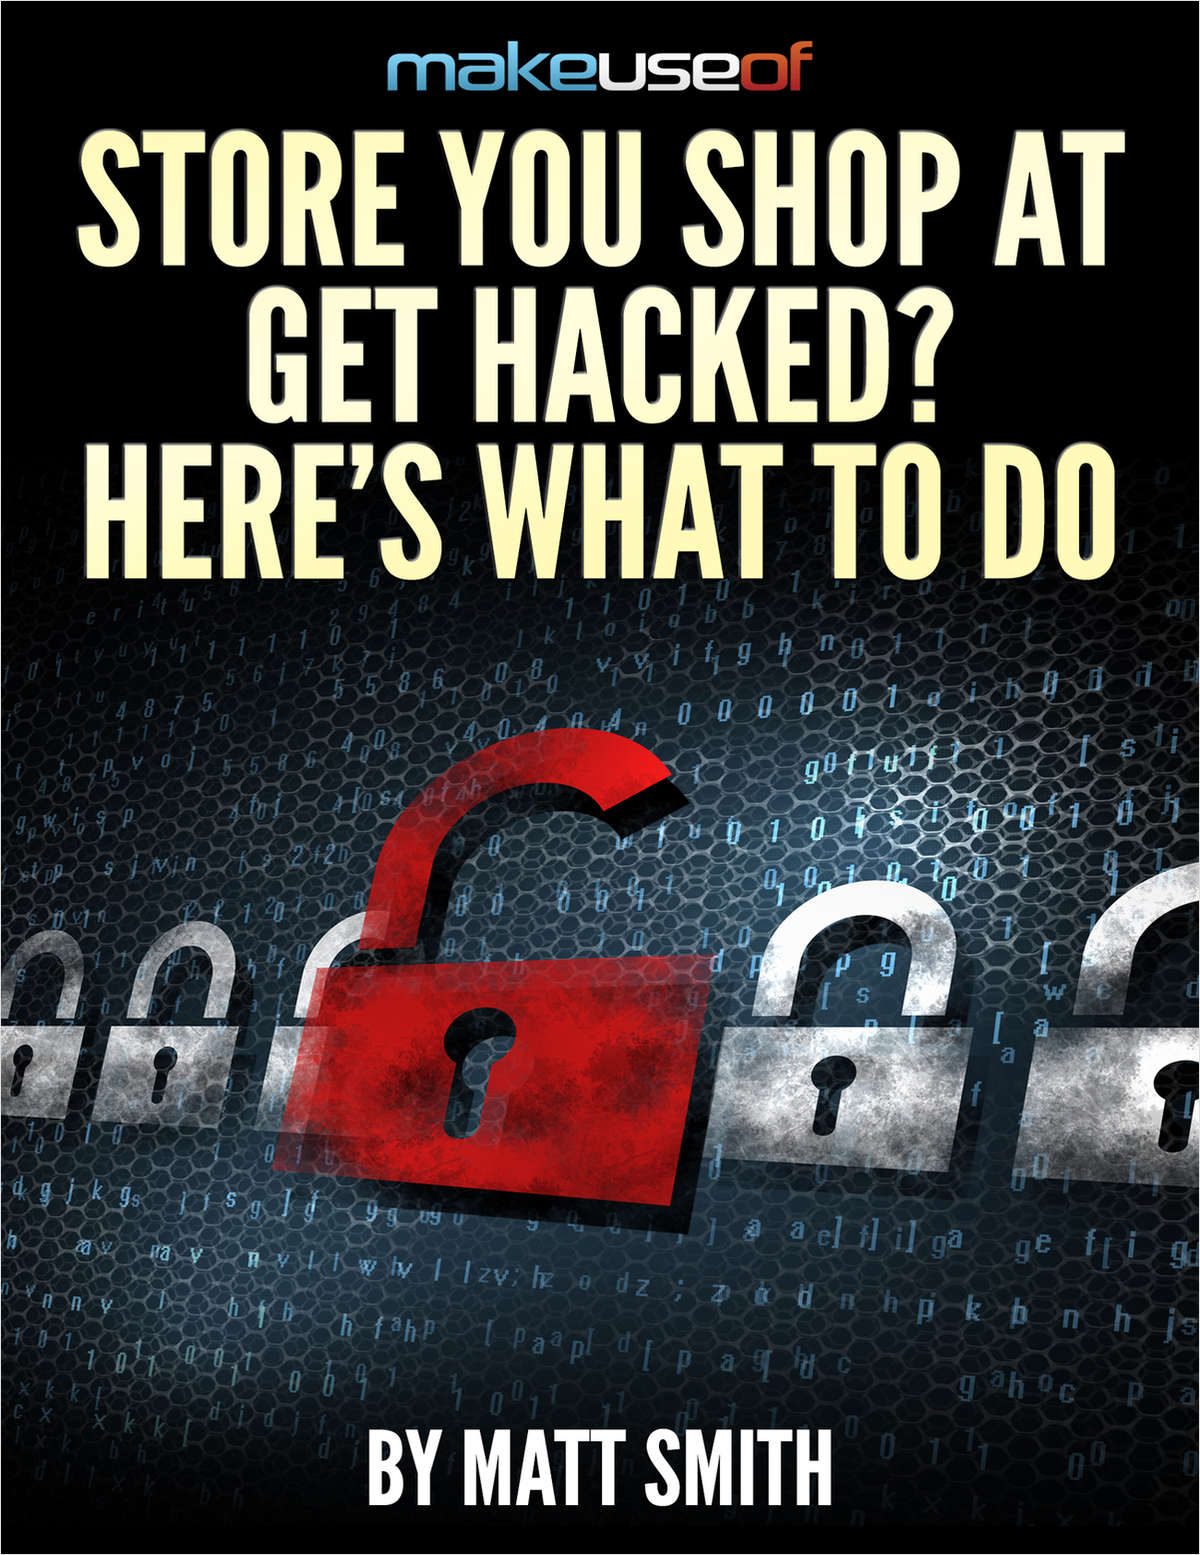 Store You Shop At Get Hacked? Here's What To Do